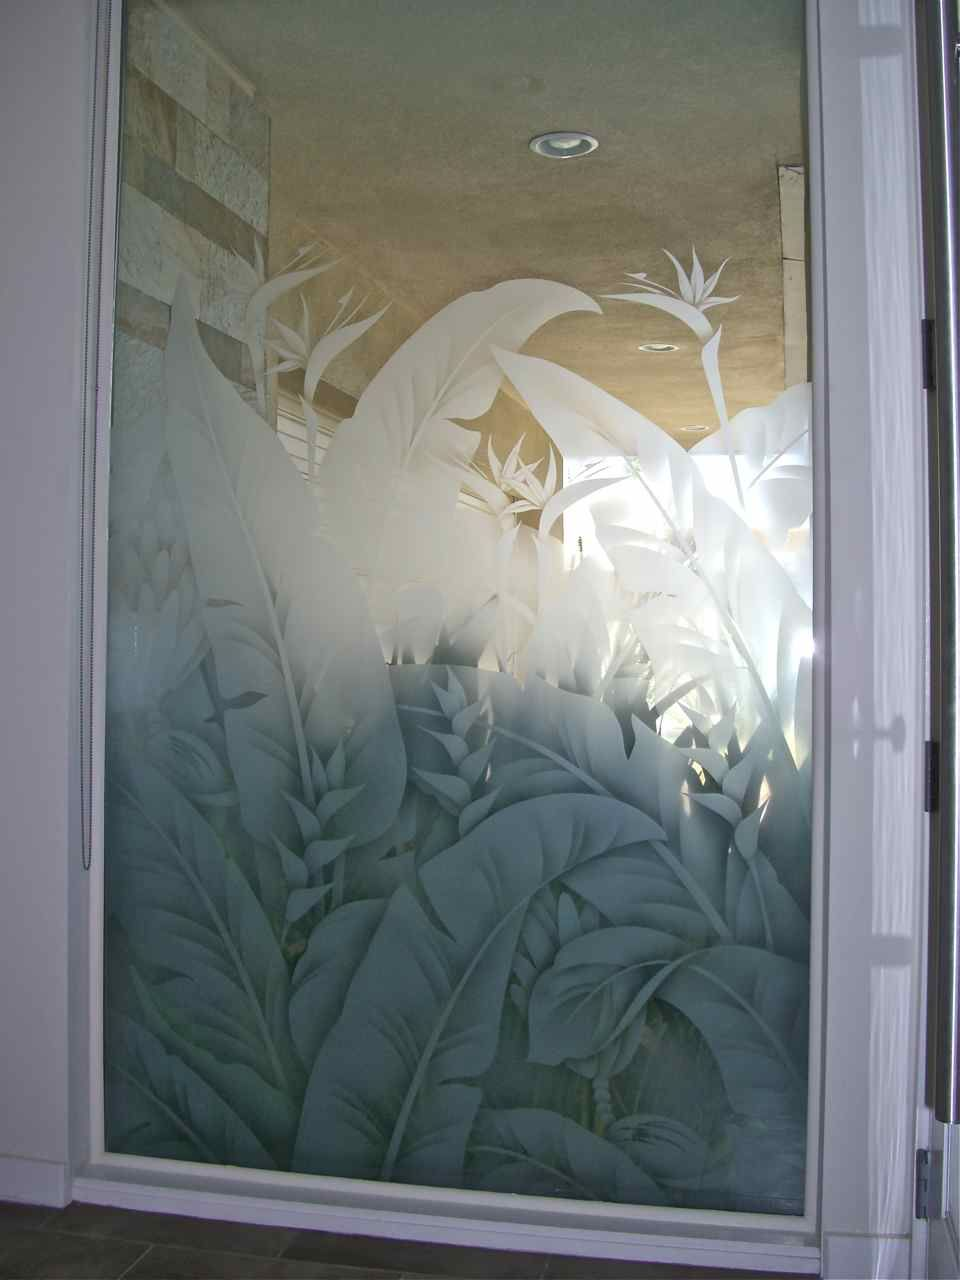 Etched glass windows provide great privacy sans soucie art glass - Windows Tropical Windows Other Metro Sans Soucie Art Glass